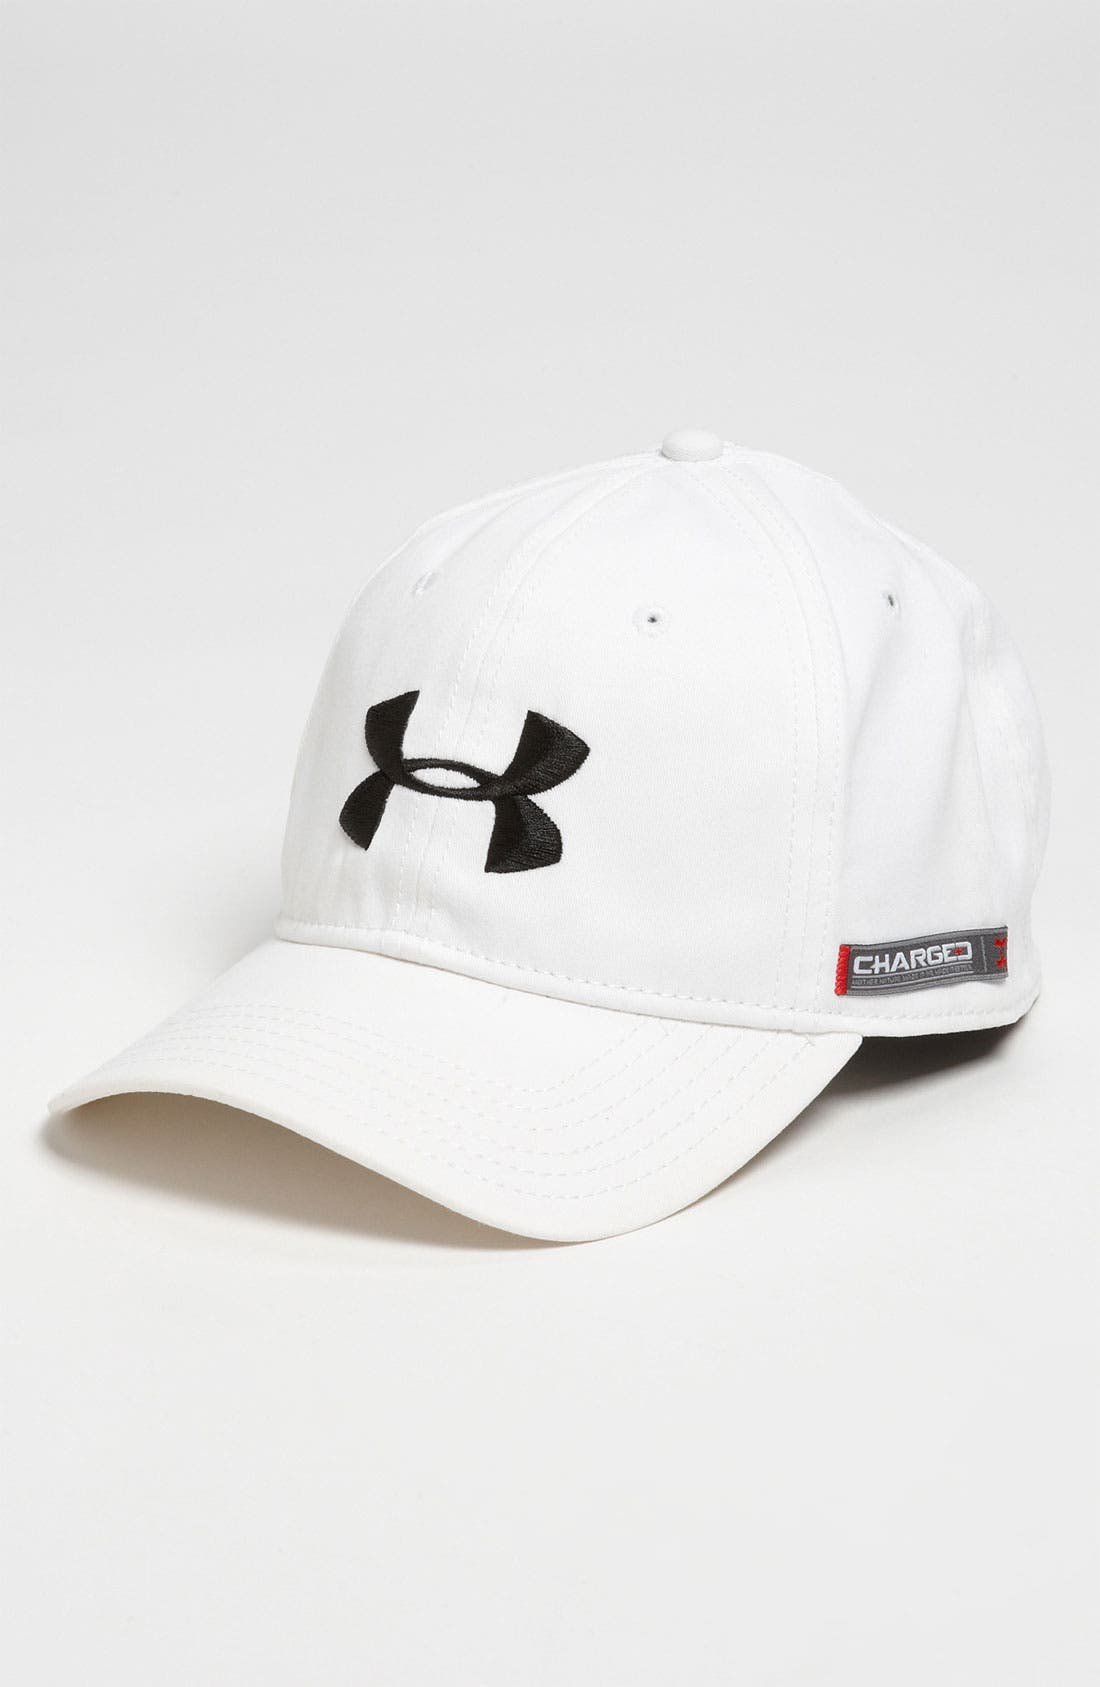 Alternate Image 1 Selected - Under Armour 'Charged' Adjustable Baseball Cap